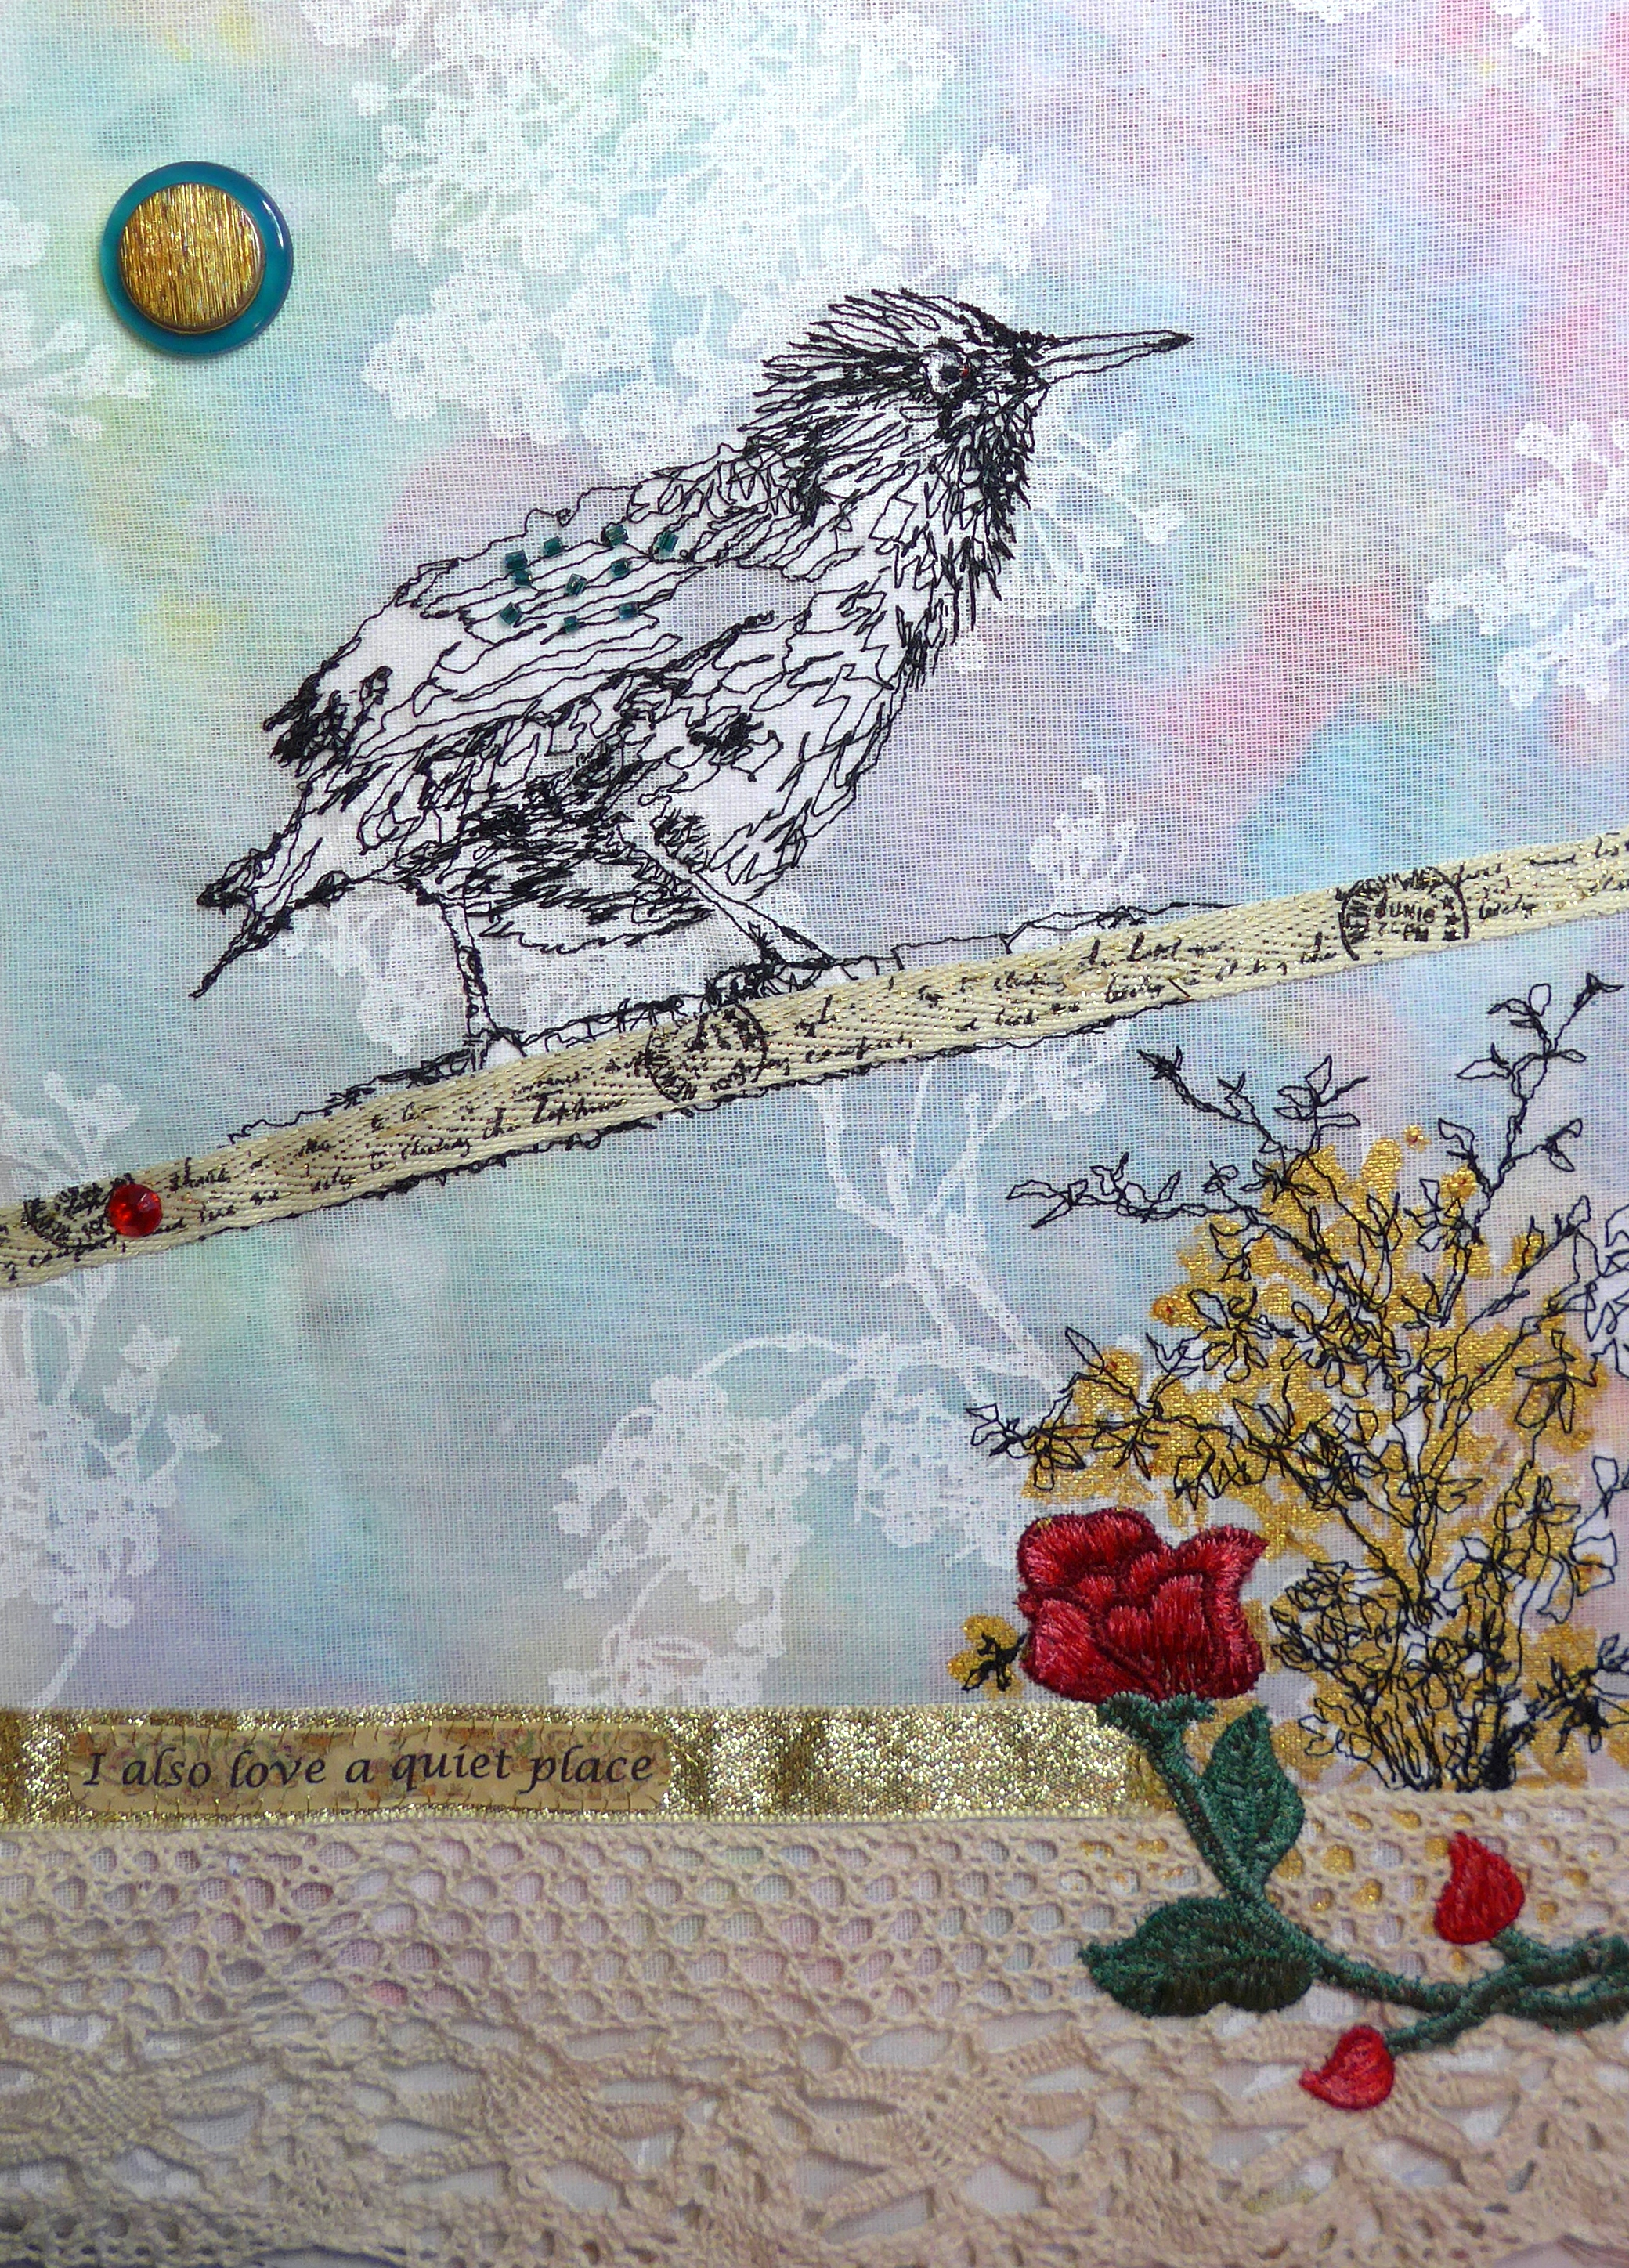 Freehand machine sewn starling drawing with collage materials by artist Diane Young